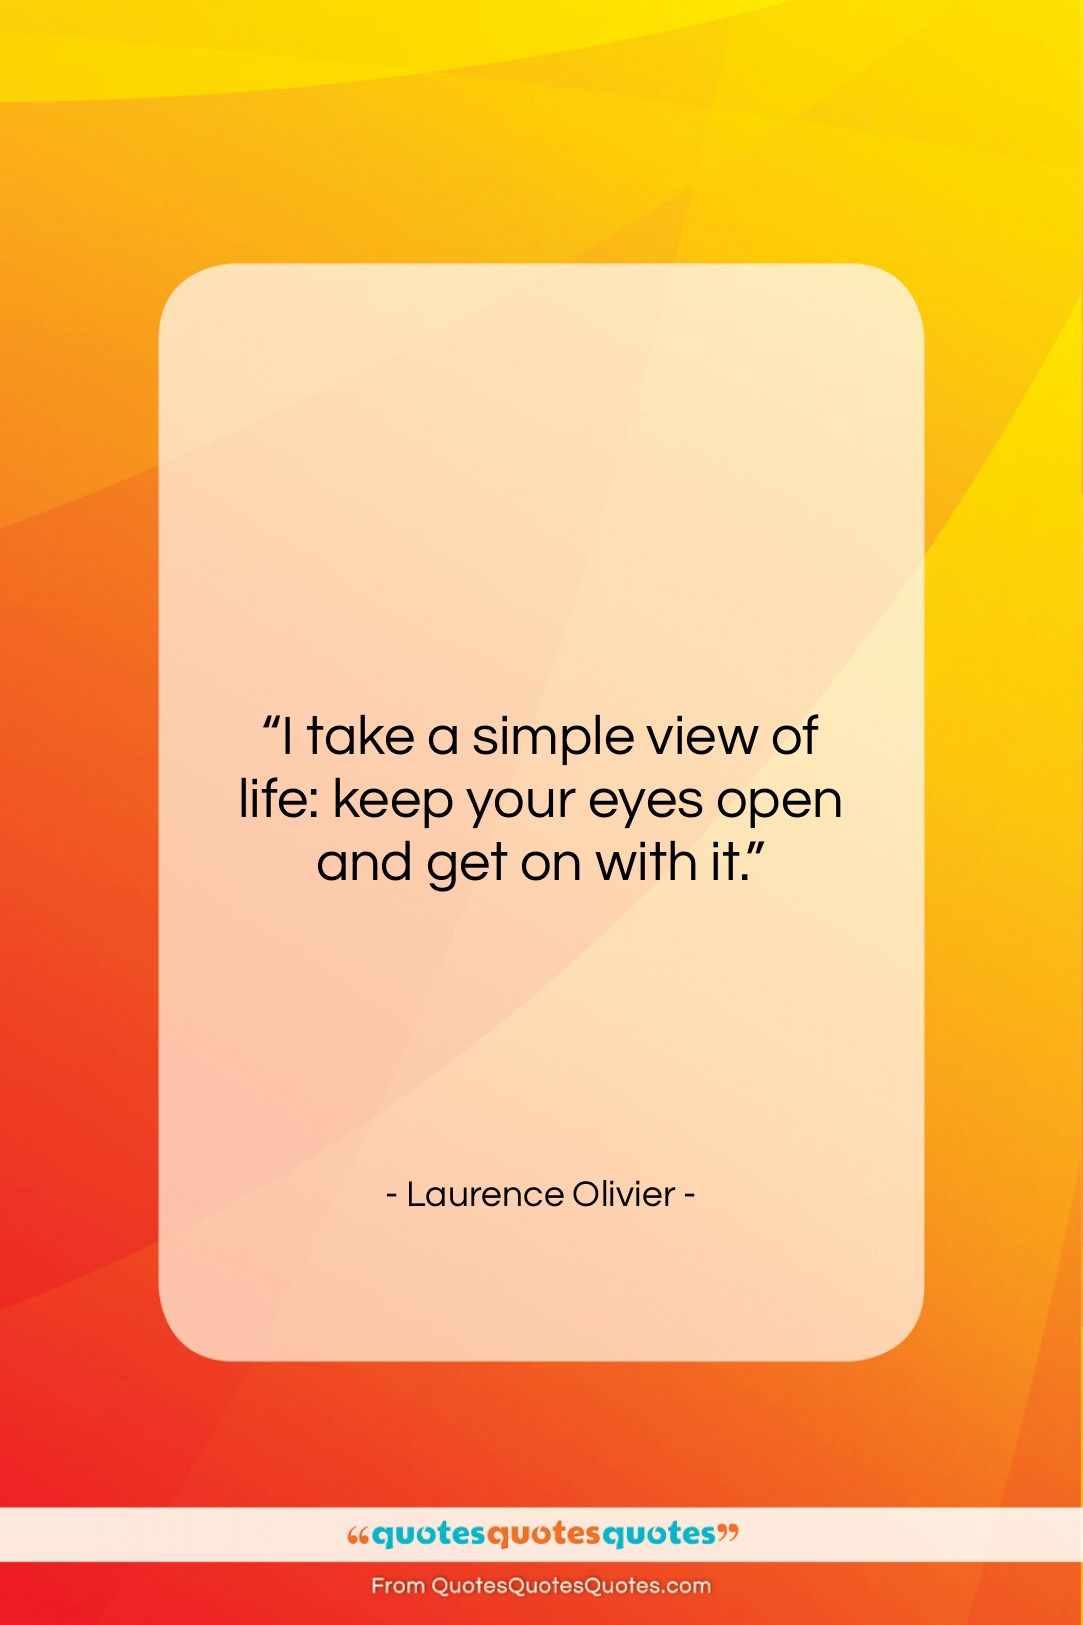 """Laurence Olivier quote: """"I take a simple view of life:…""""- at QuotesQuotesQuotes.com"""